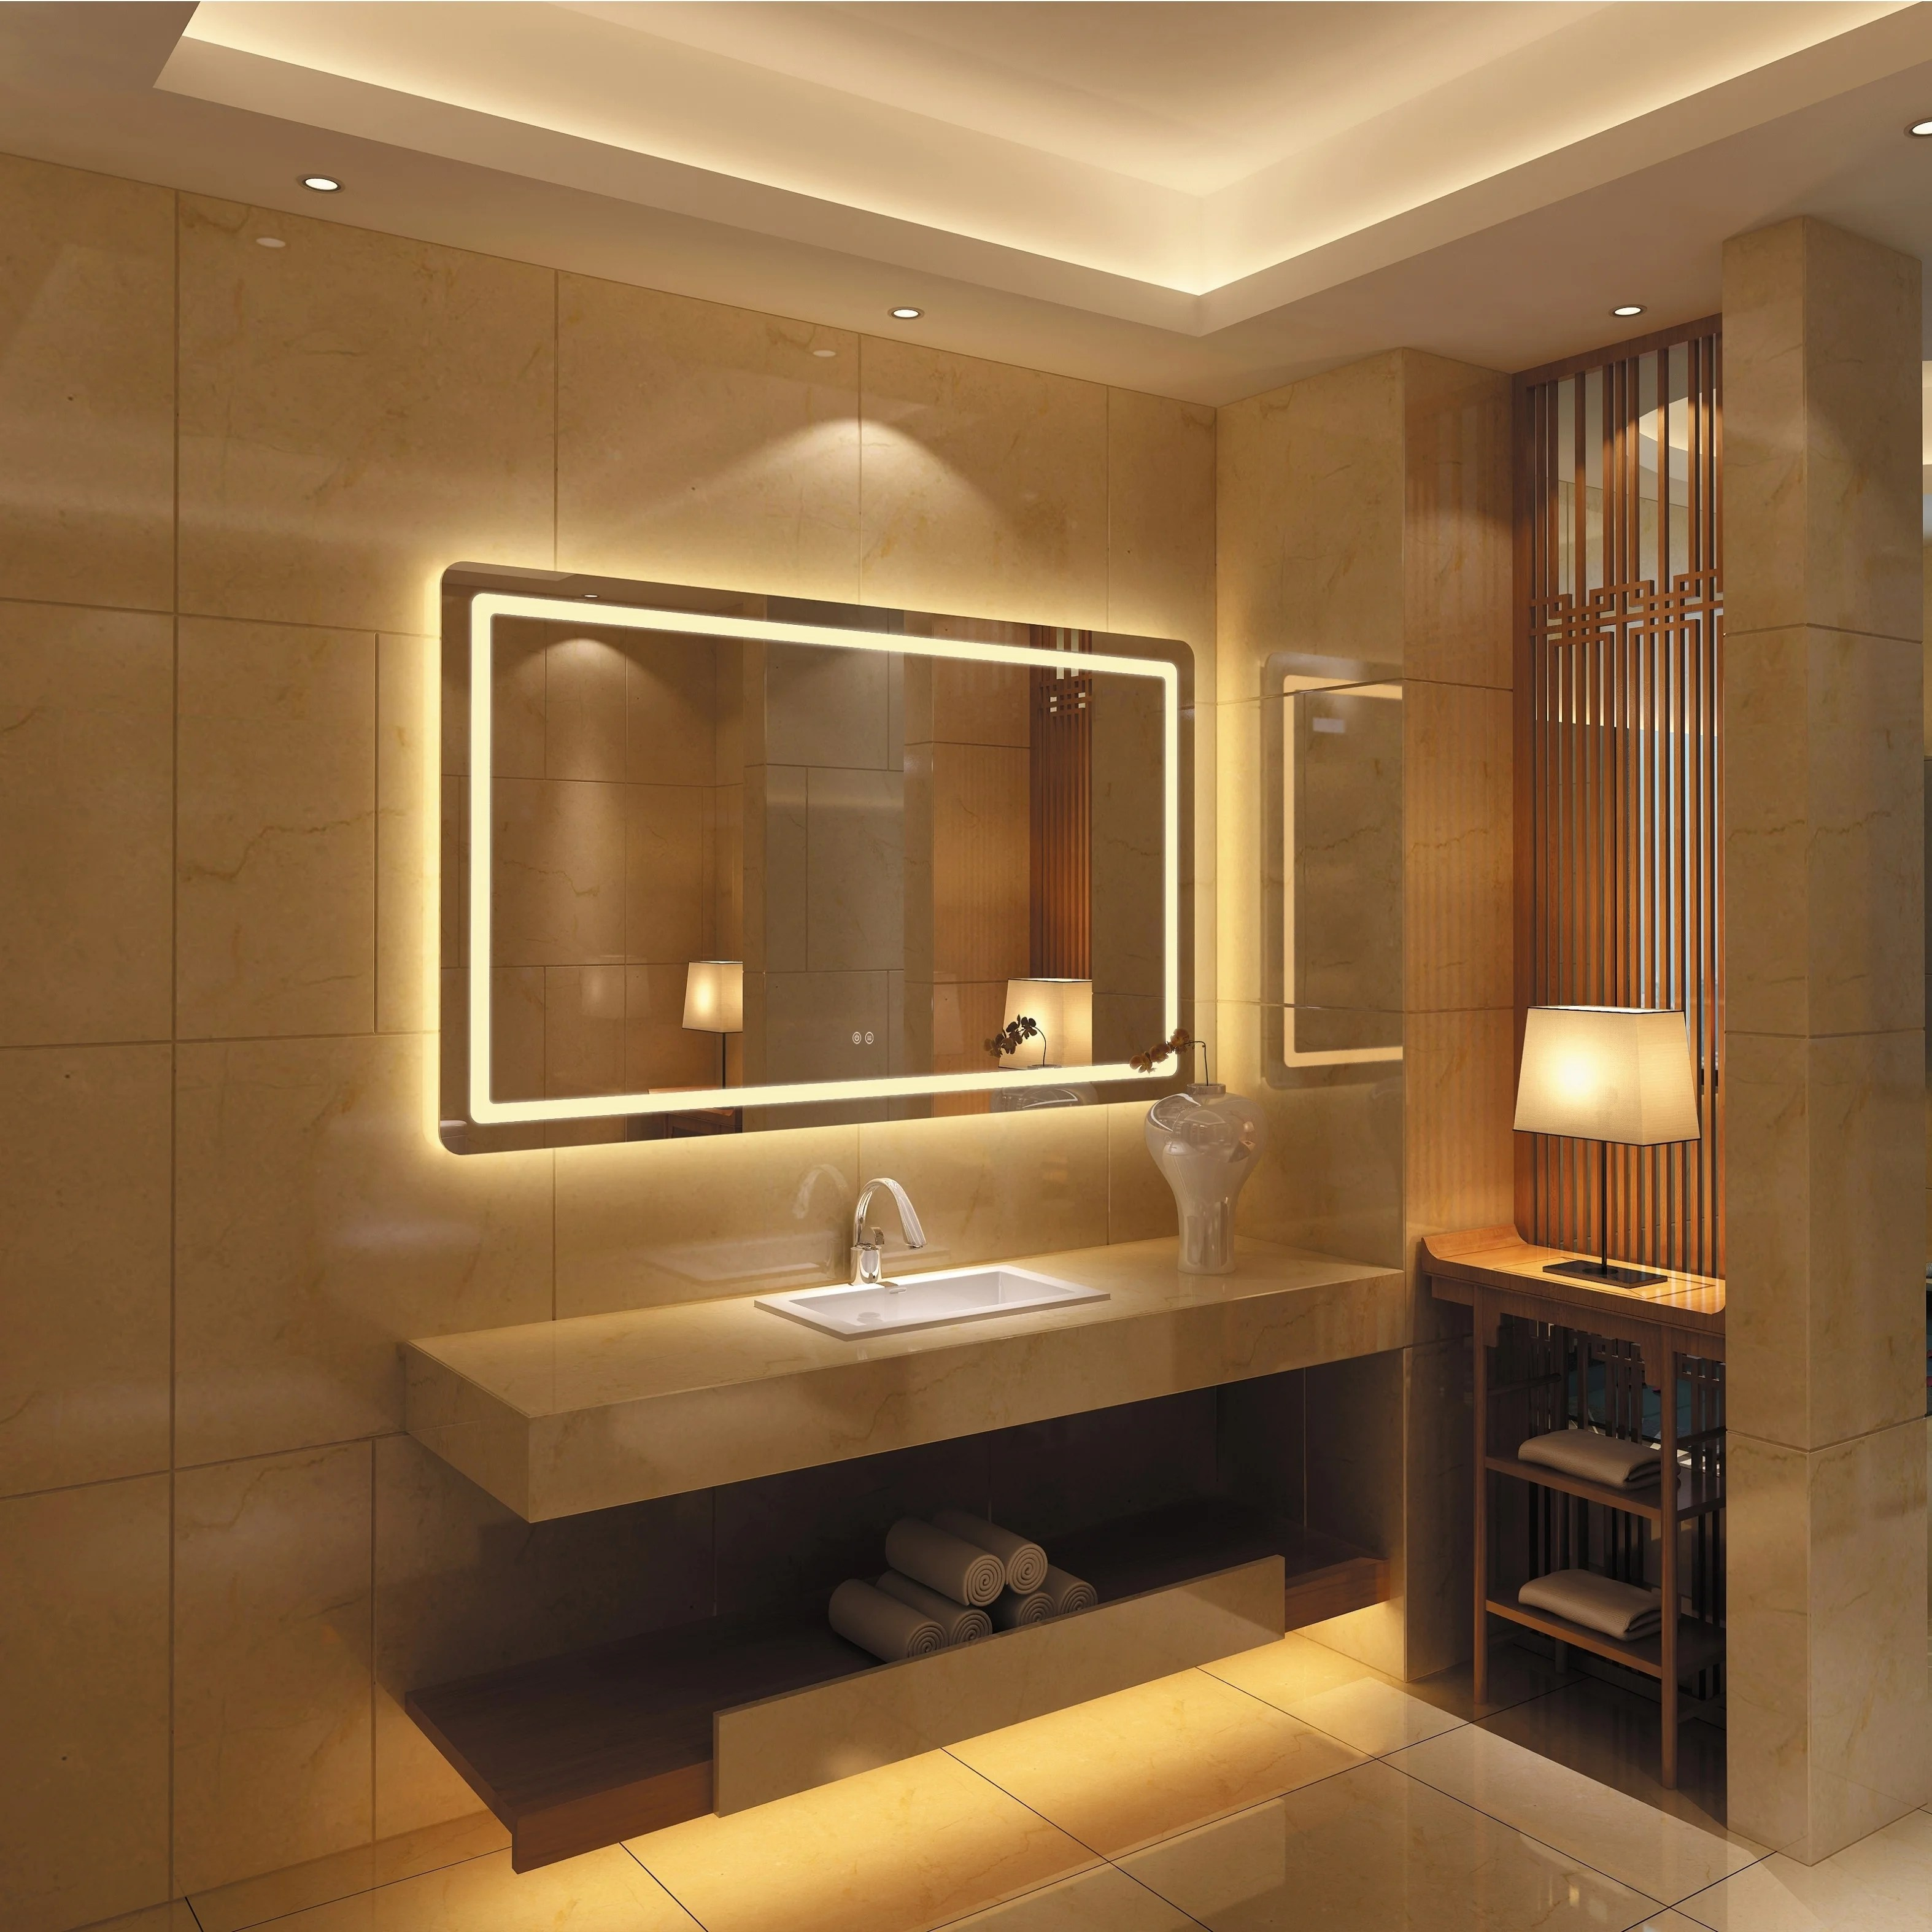 Shop Frameless Wall Mounted Led Bathroom Mirror Colorless Overstock 25435138